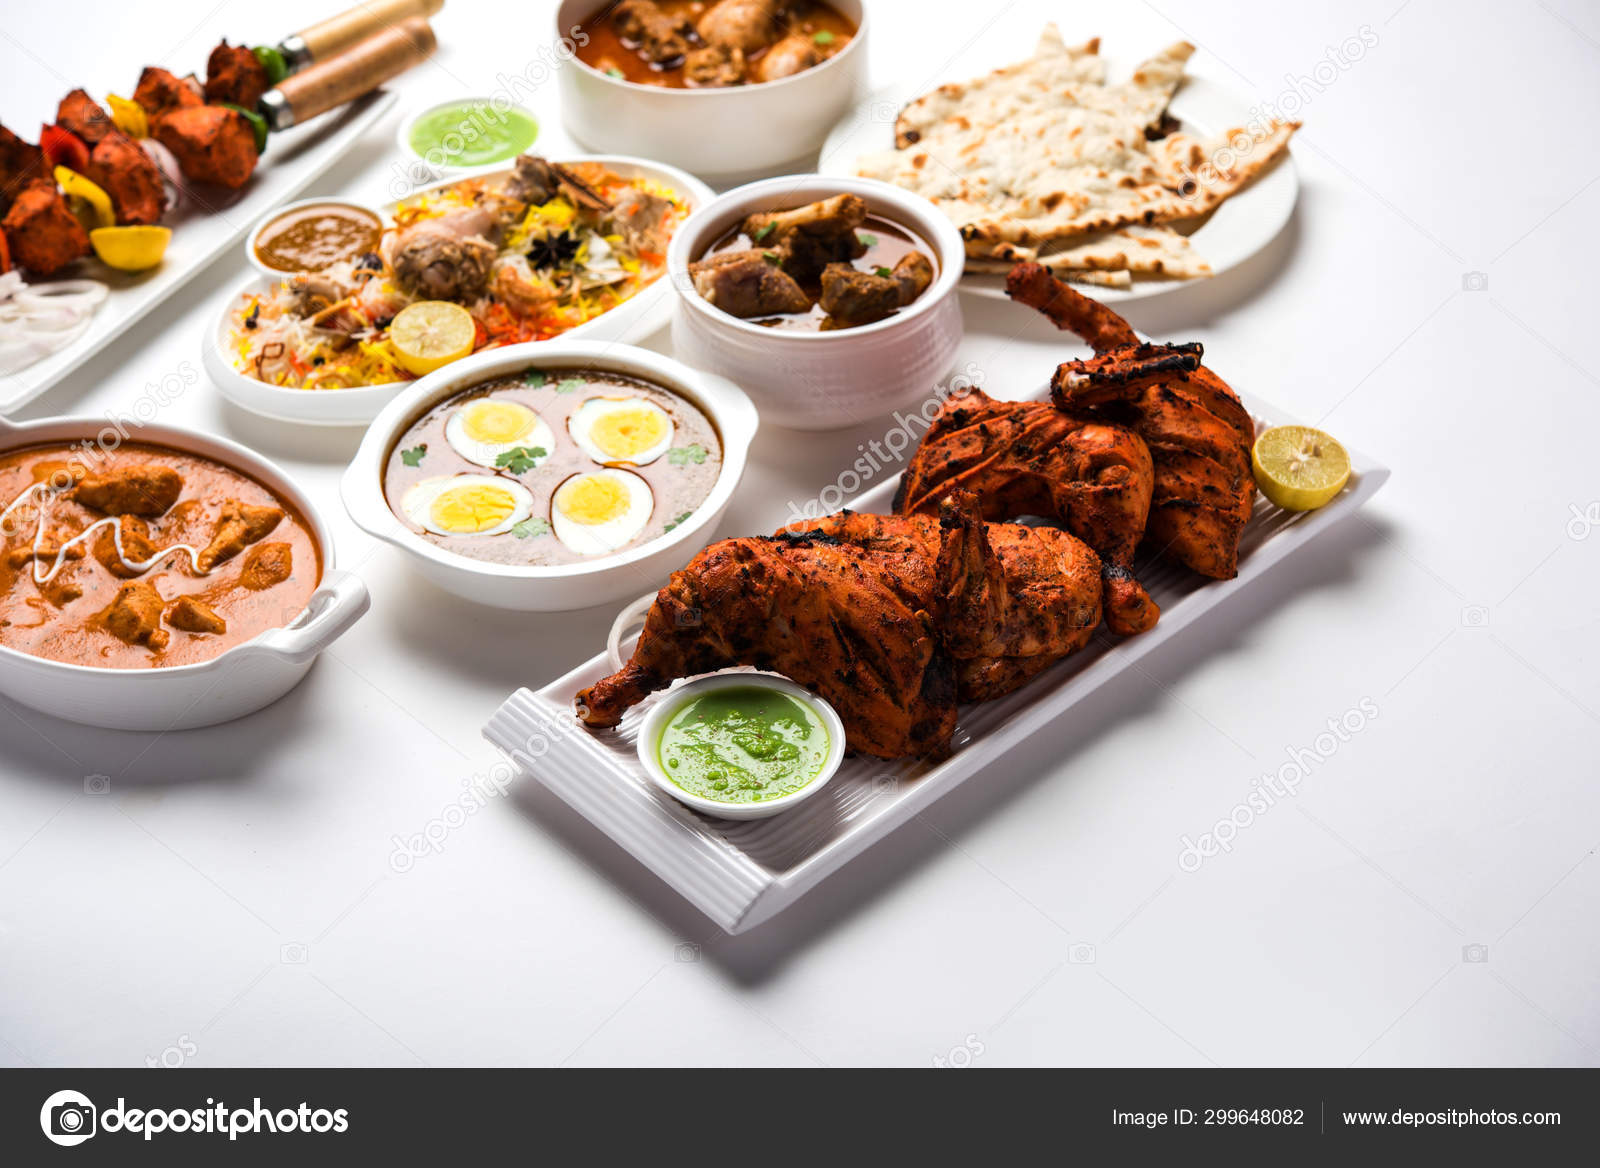 Assorted Indian Non Vegetarian Food Recipe Served Group Includes Chicken Stock Photo C Arundhati Callistainteriors In 299648082